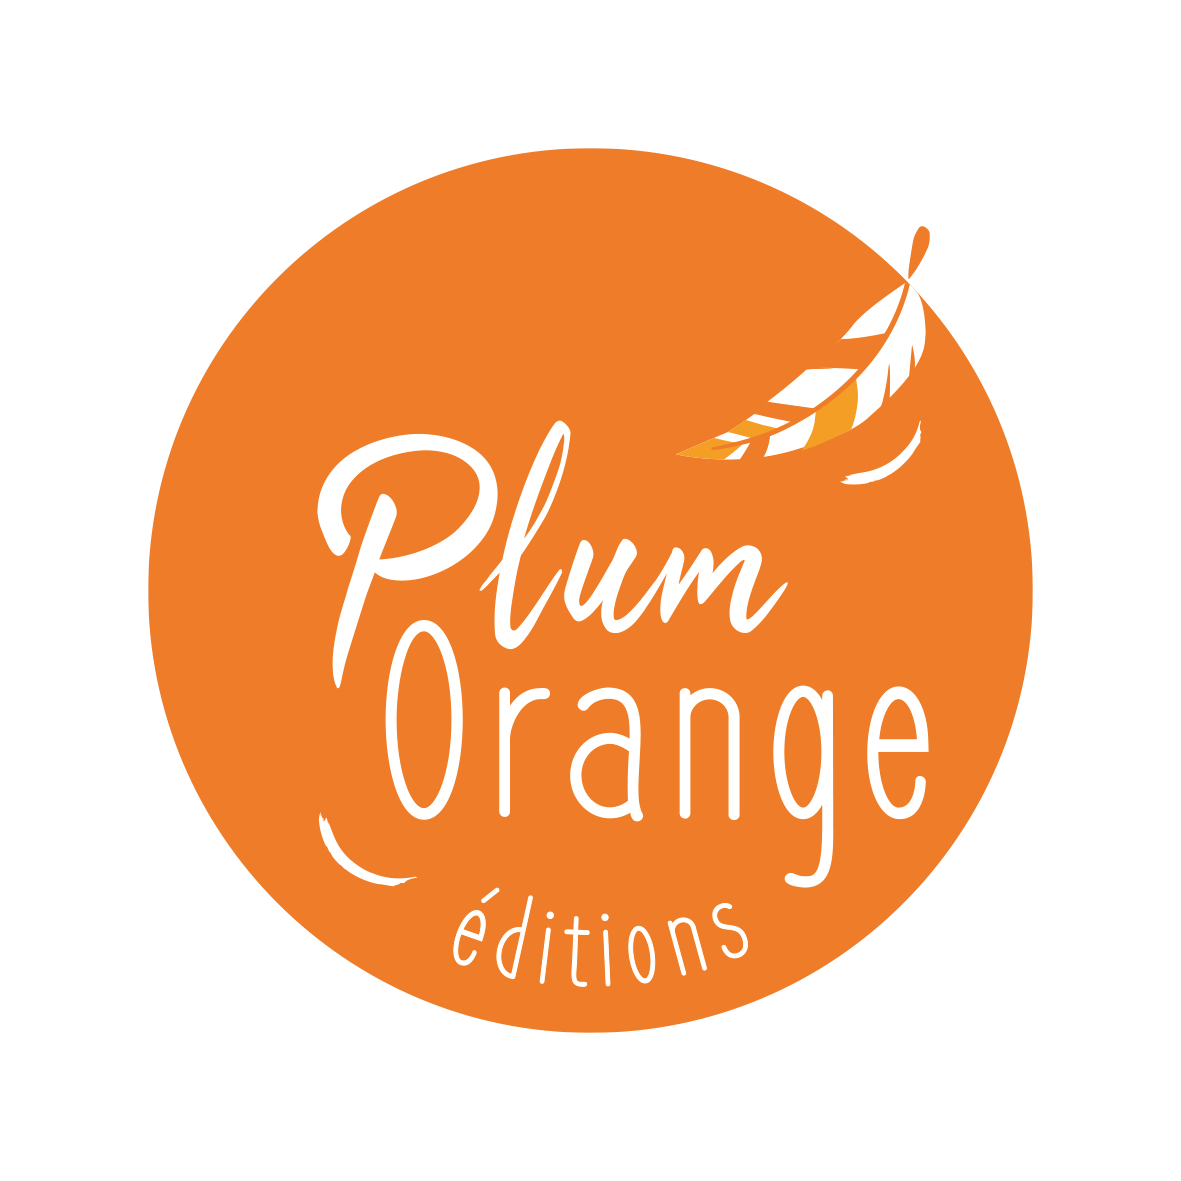 Plum-Orange-proprietaire-cartesdesvinsdefrance